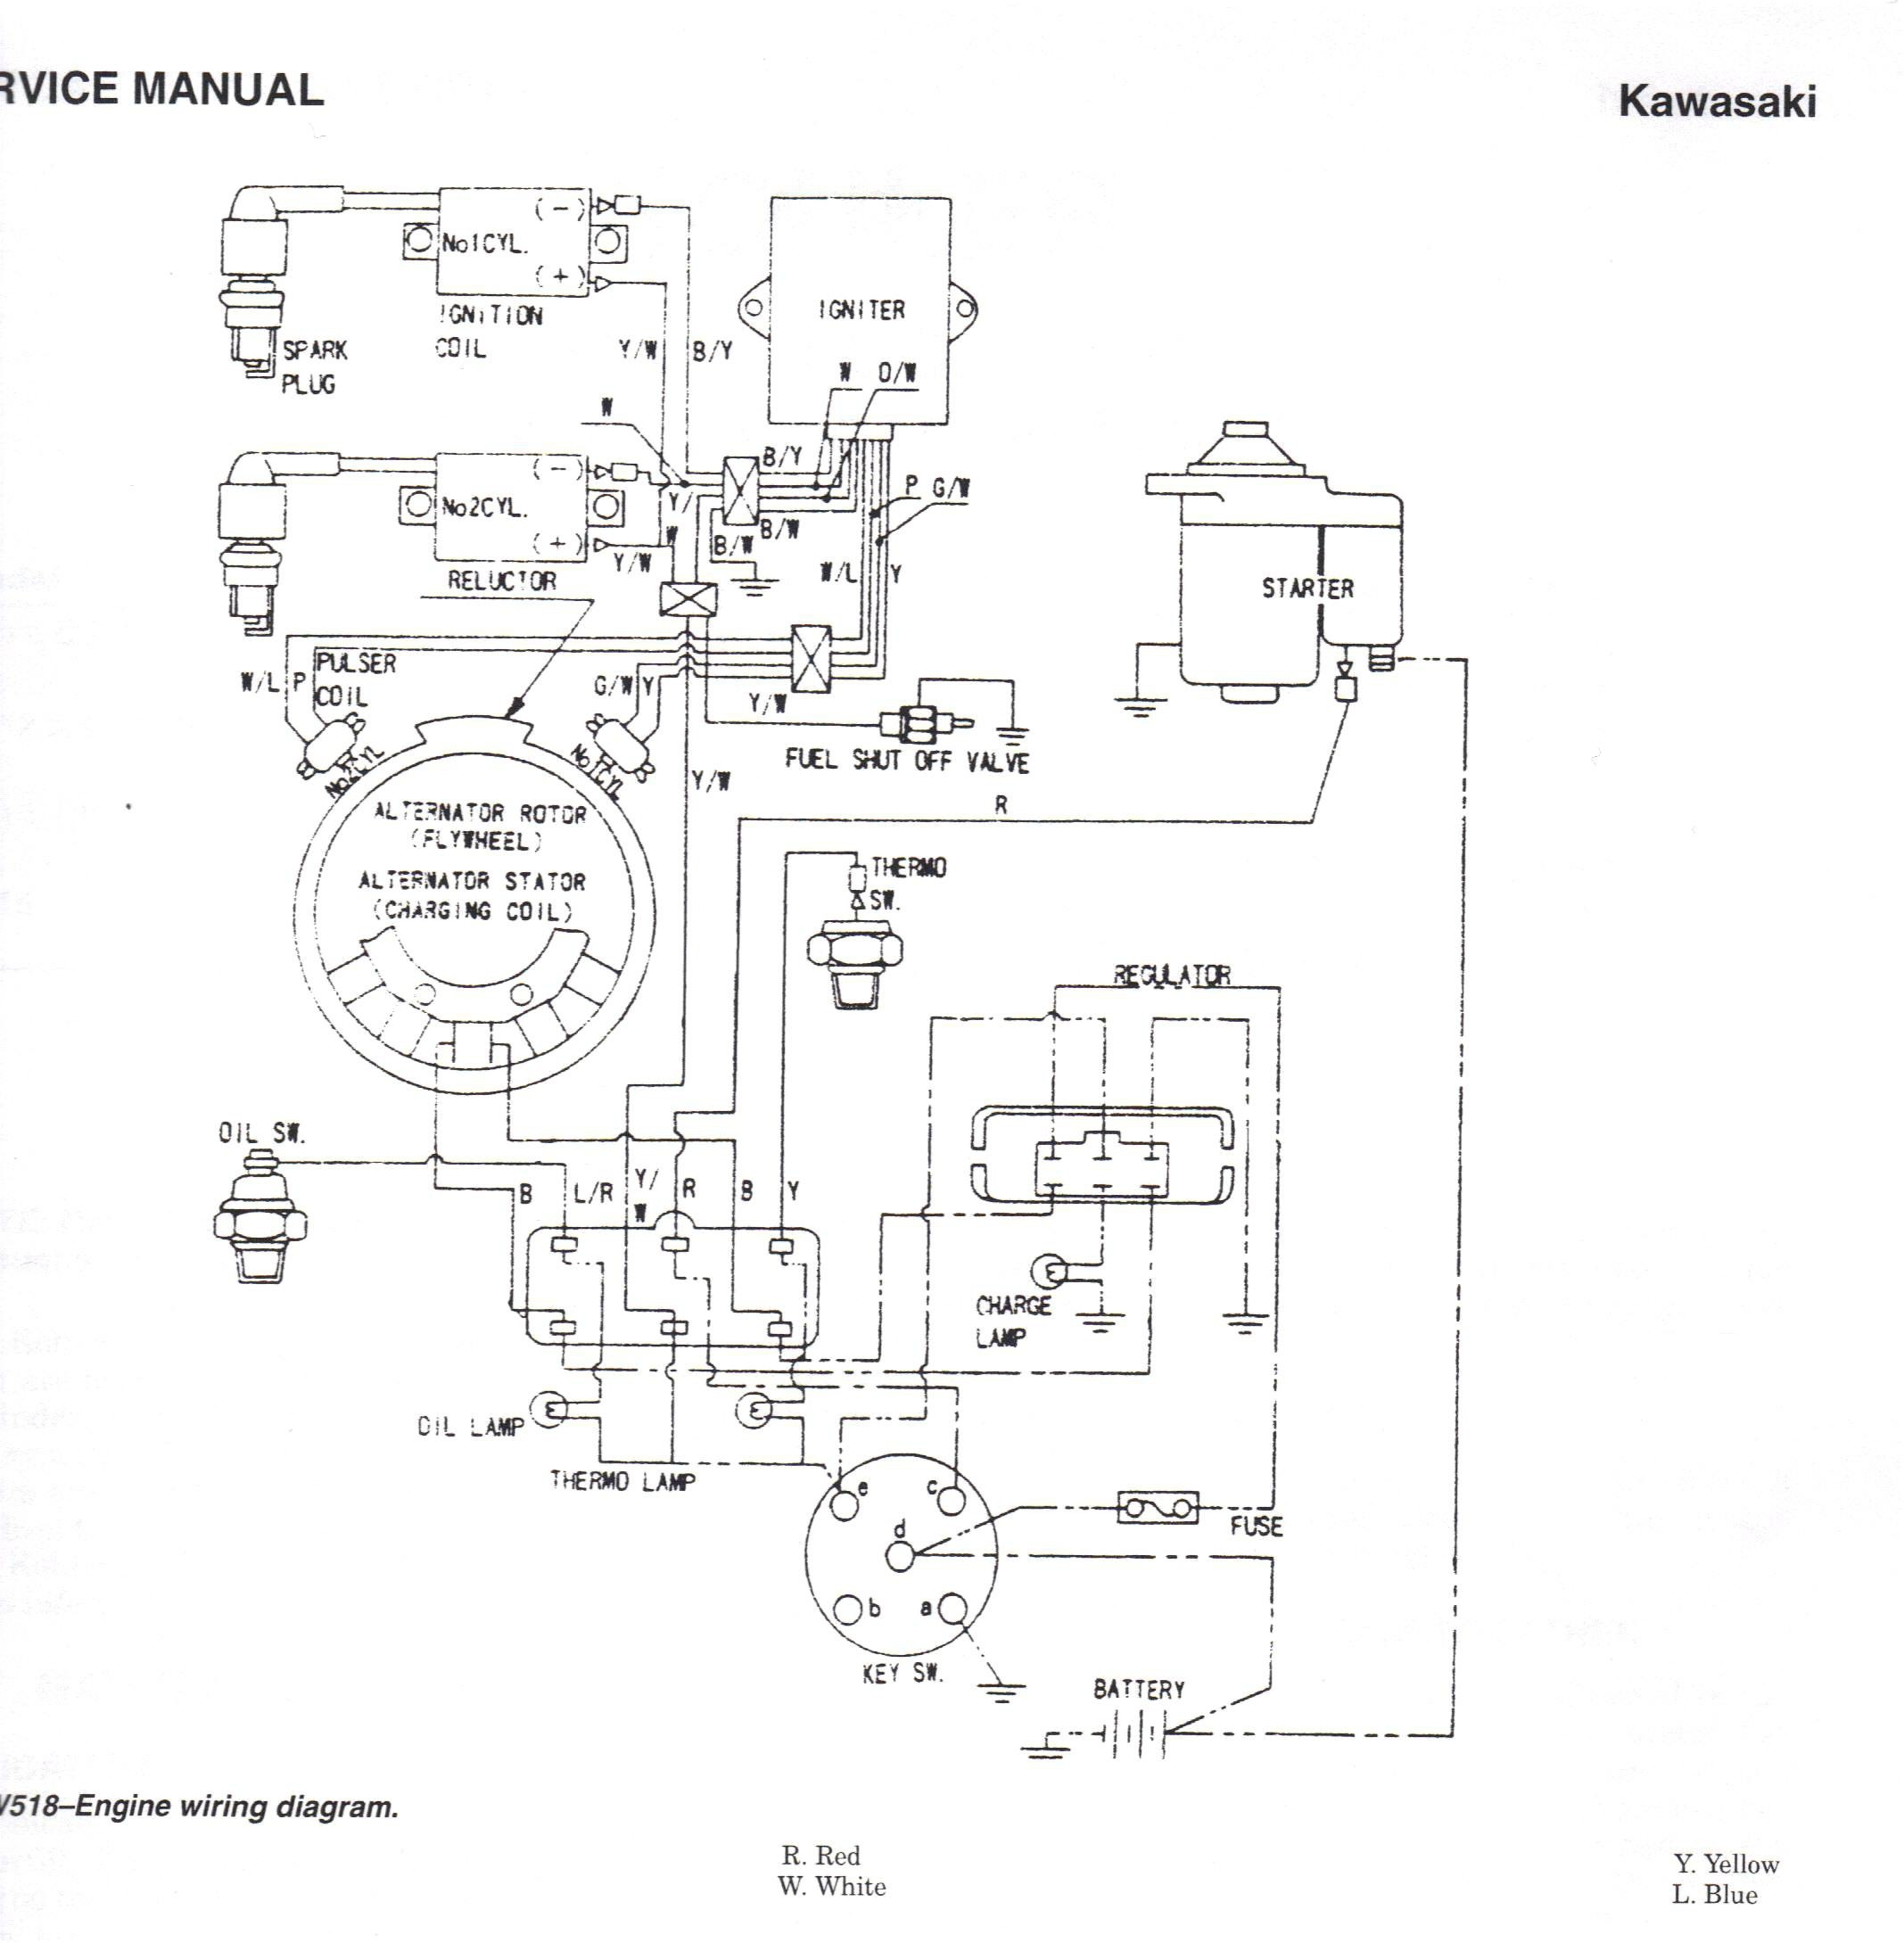 John Deere Backhoe Loader Diesel Wiring Diagram on john deere 2240